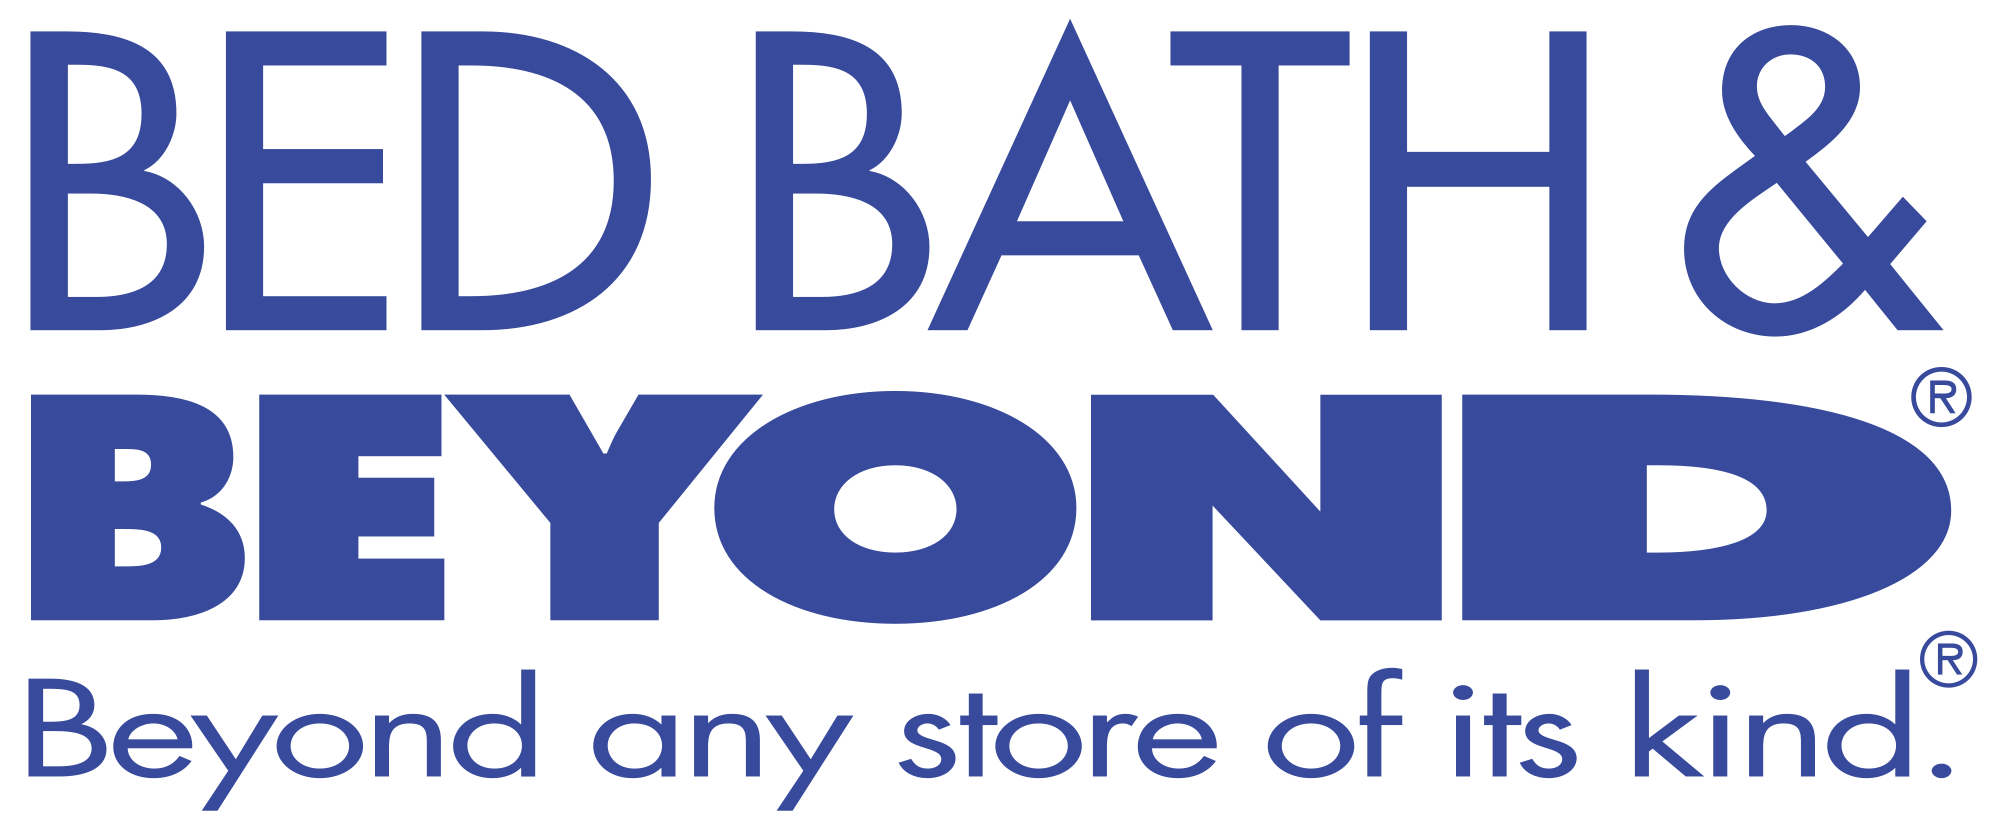 Bed bath and beyond coupons help you save money